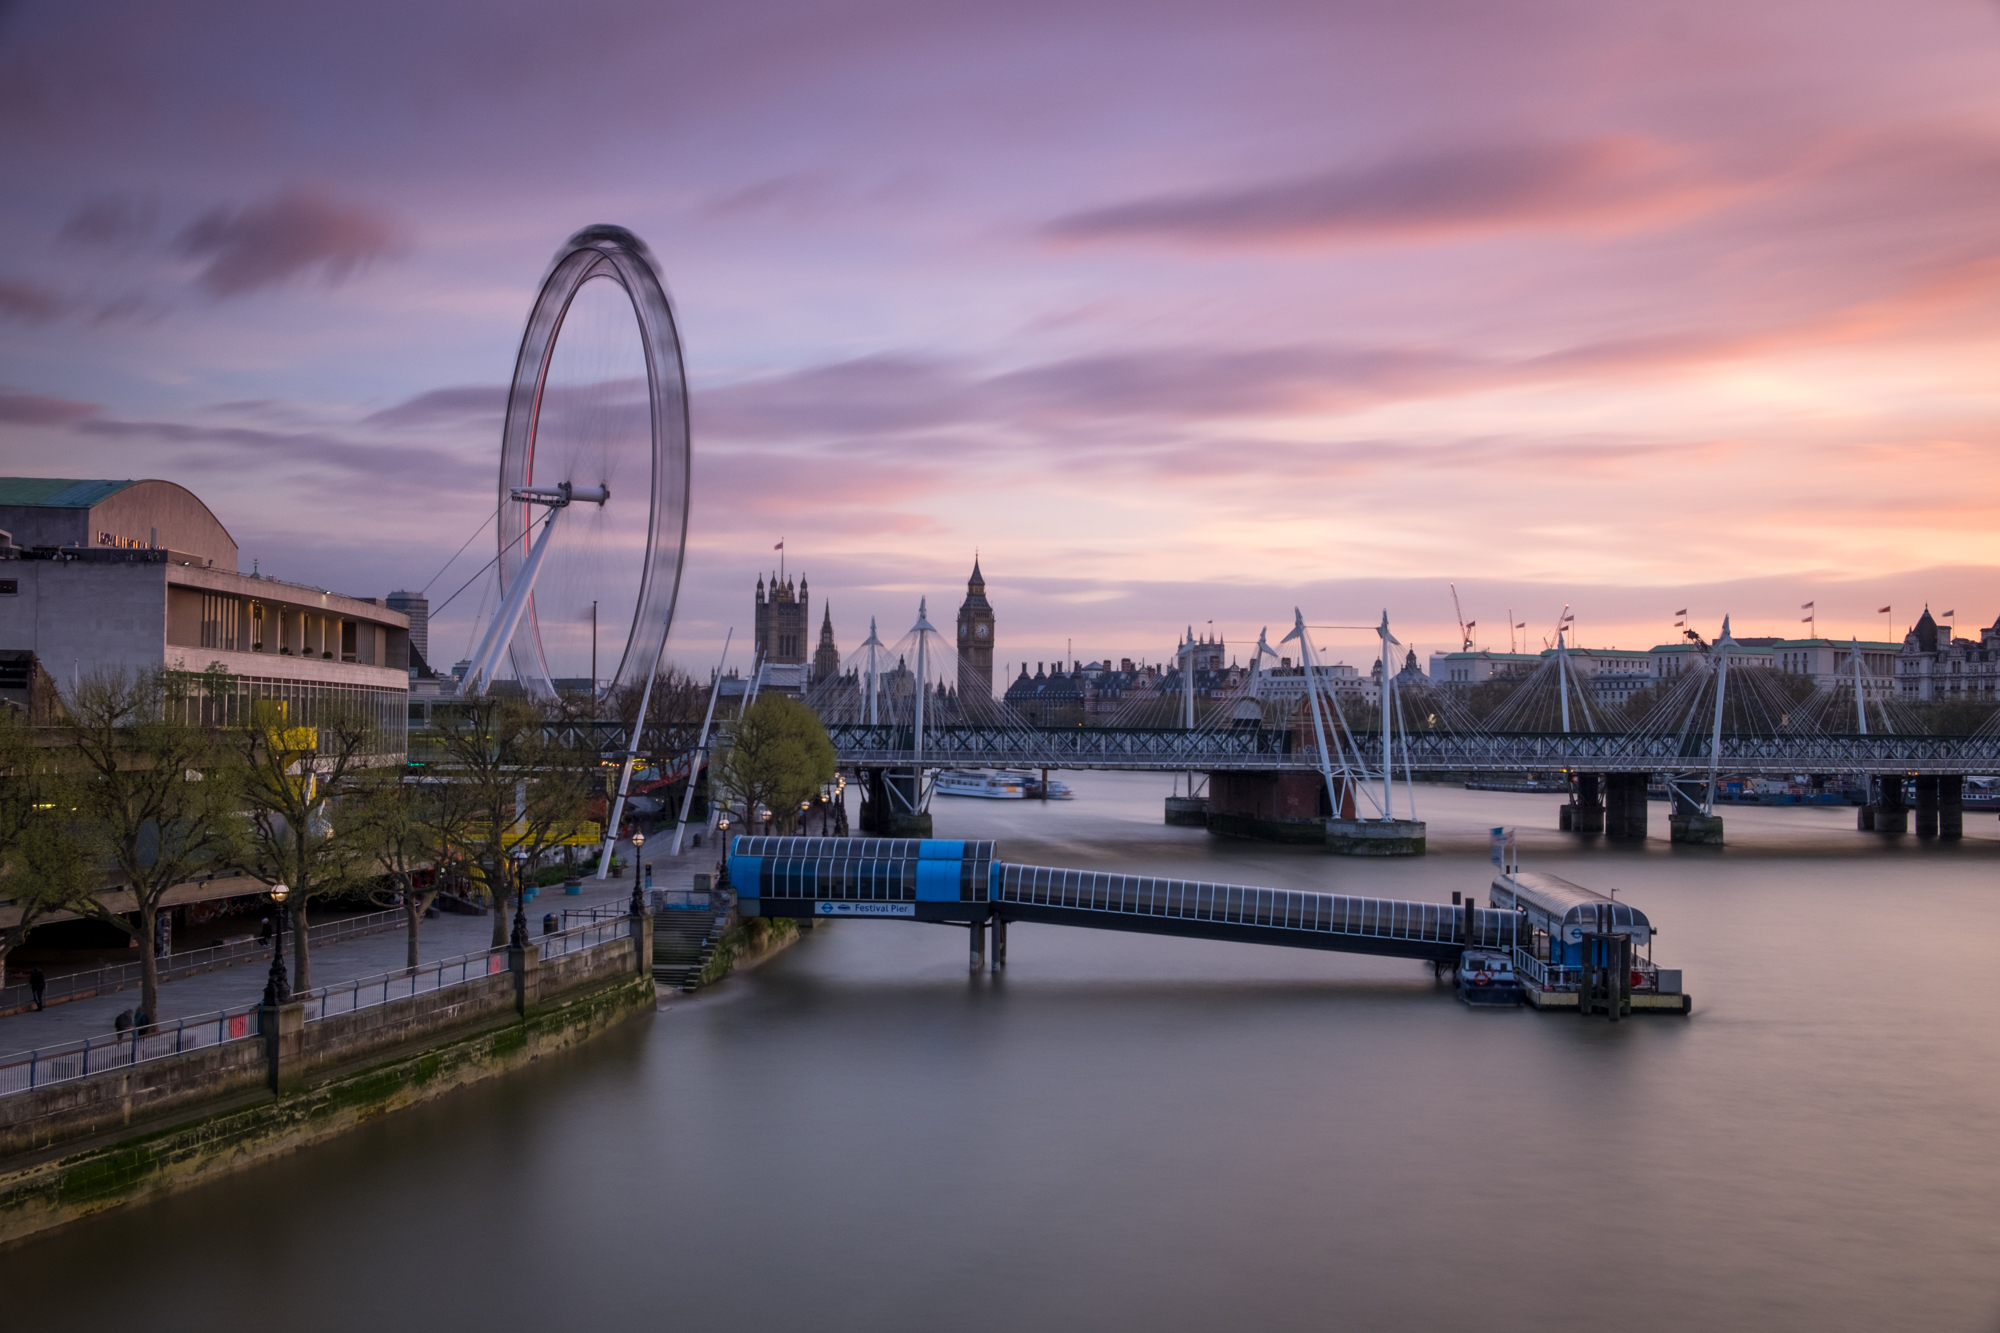 Sunset at the South Bank with lights and darks and vignetting by Trevor Sherwin